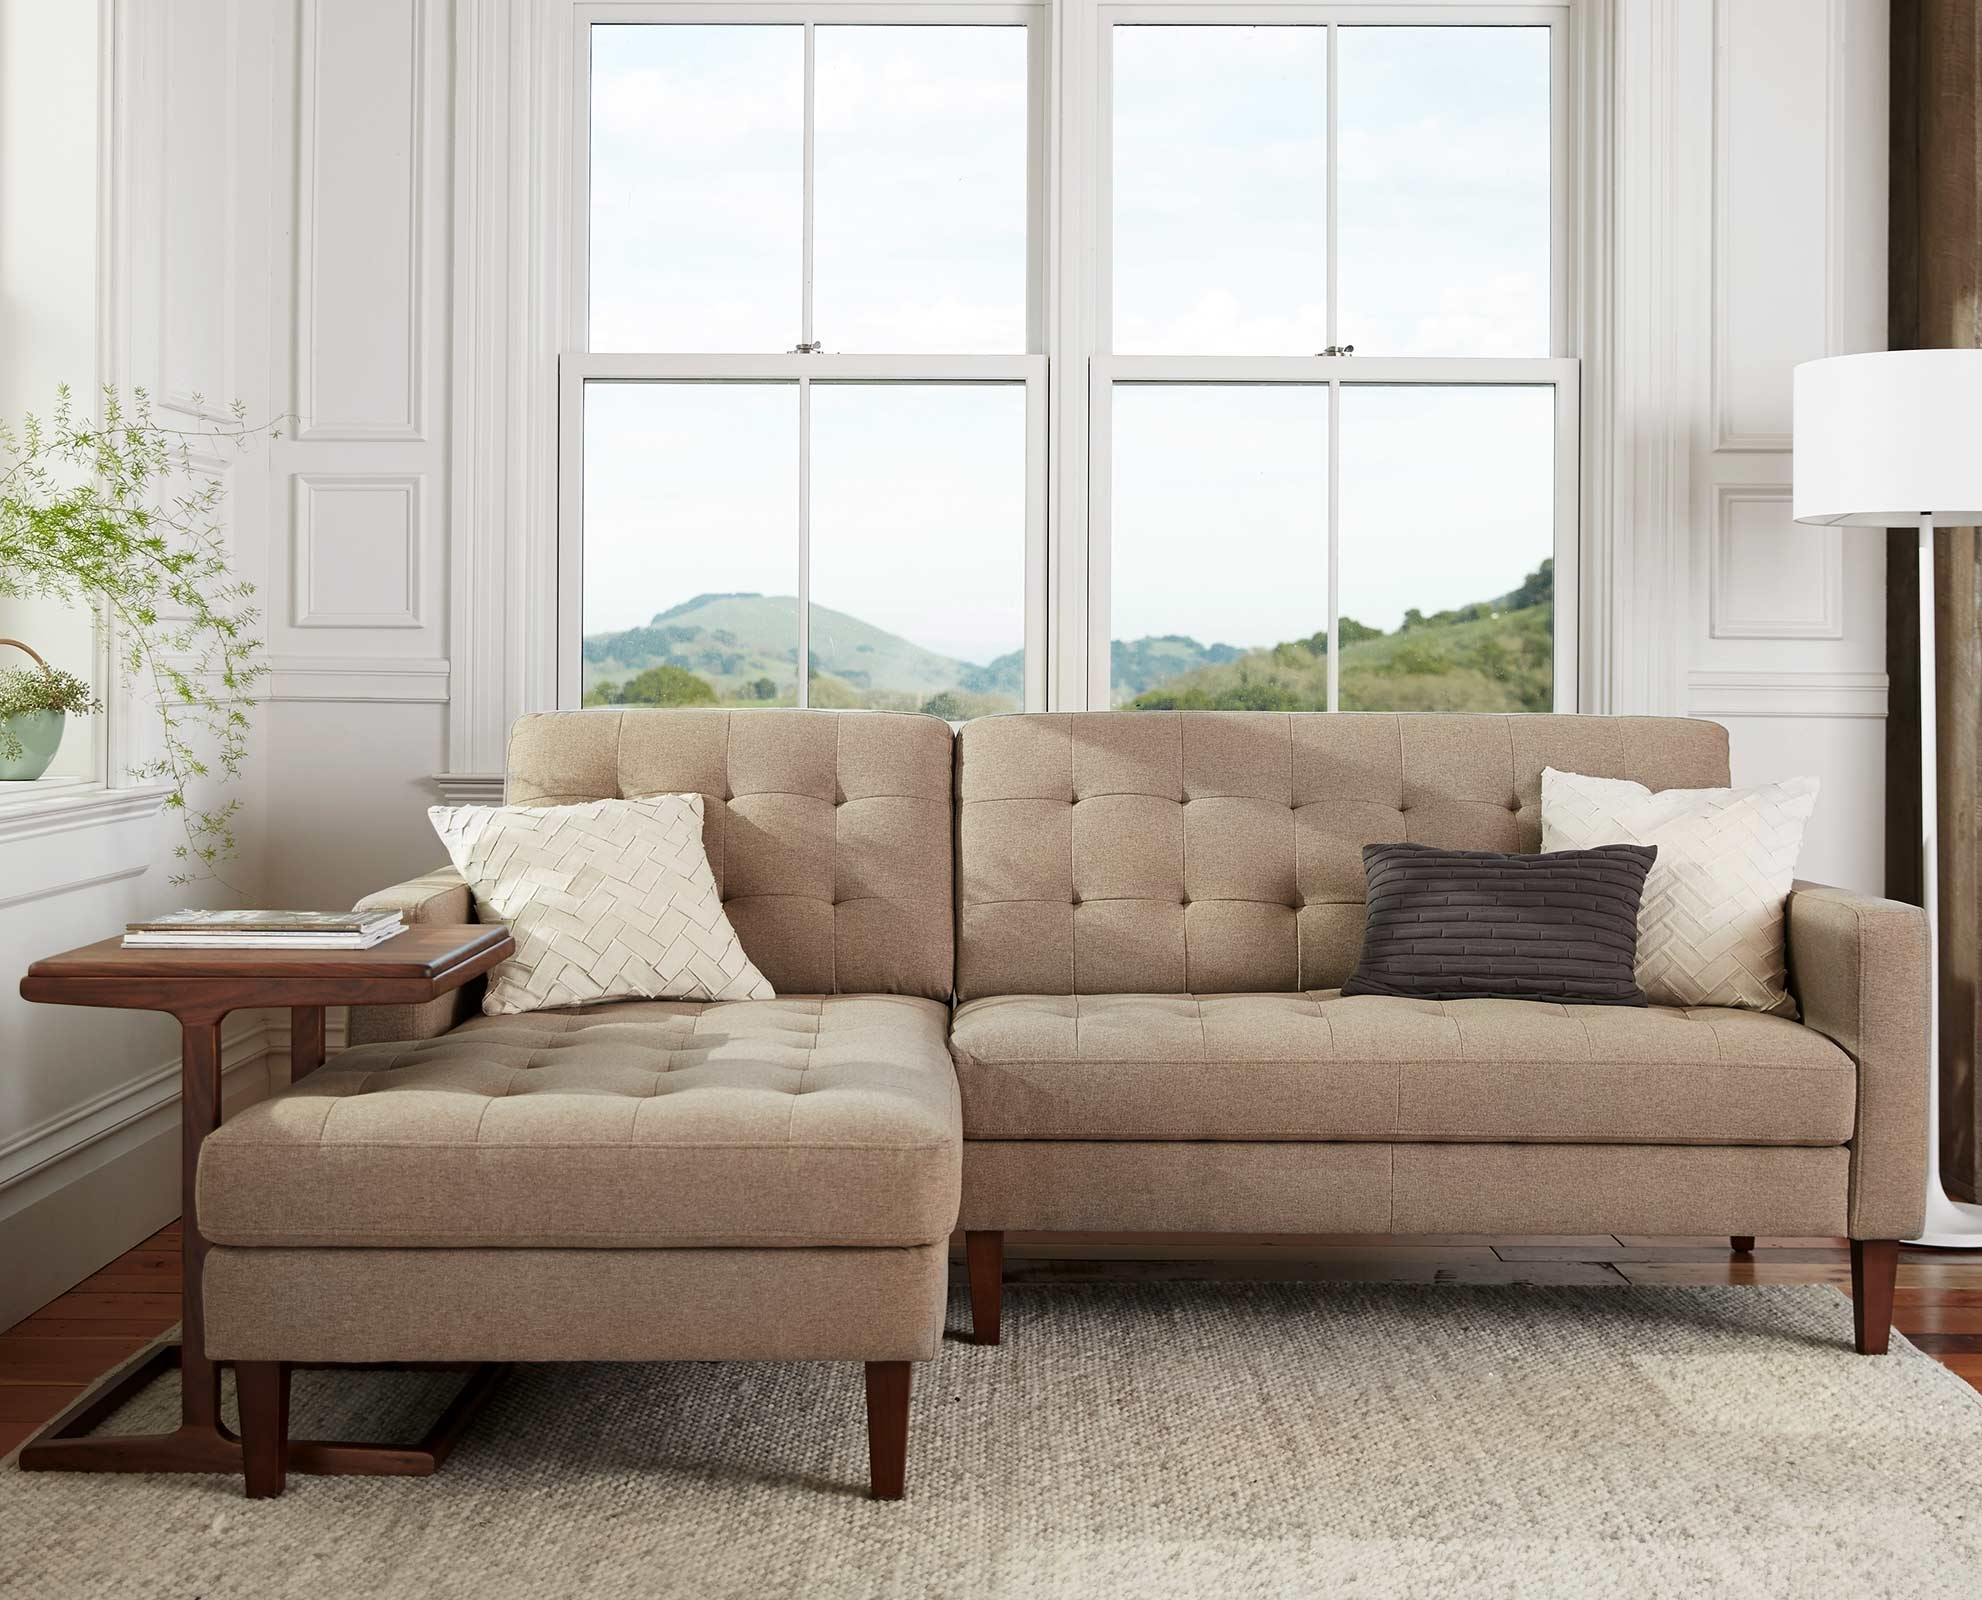 Camilla Chaise Sectional | New House Decor | Pinterest | Upholstery Pertaining To Dania Sectional Sofas (View 9 of 10)